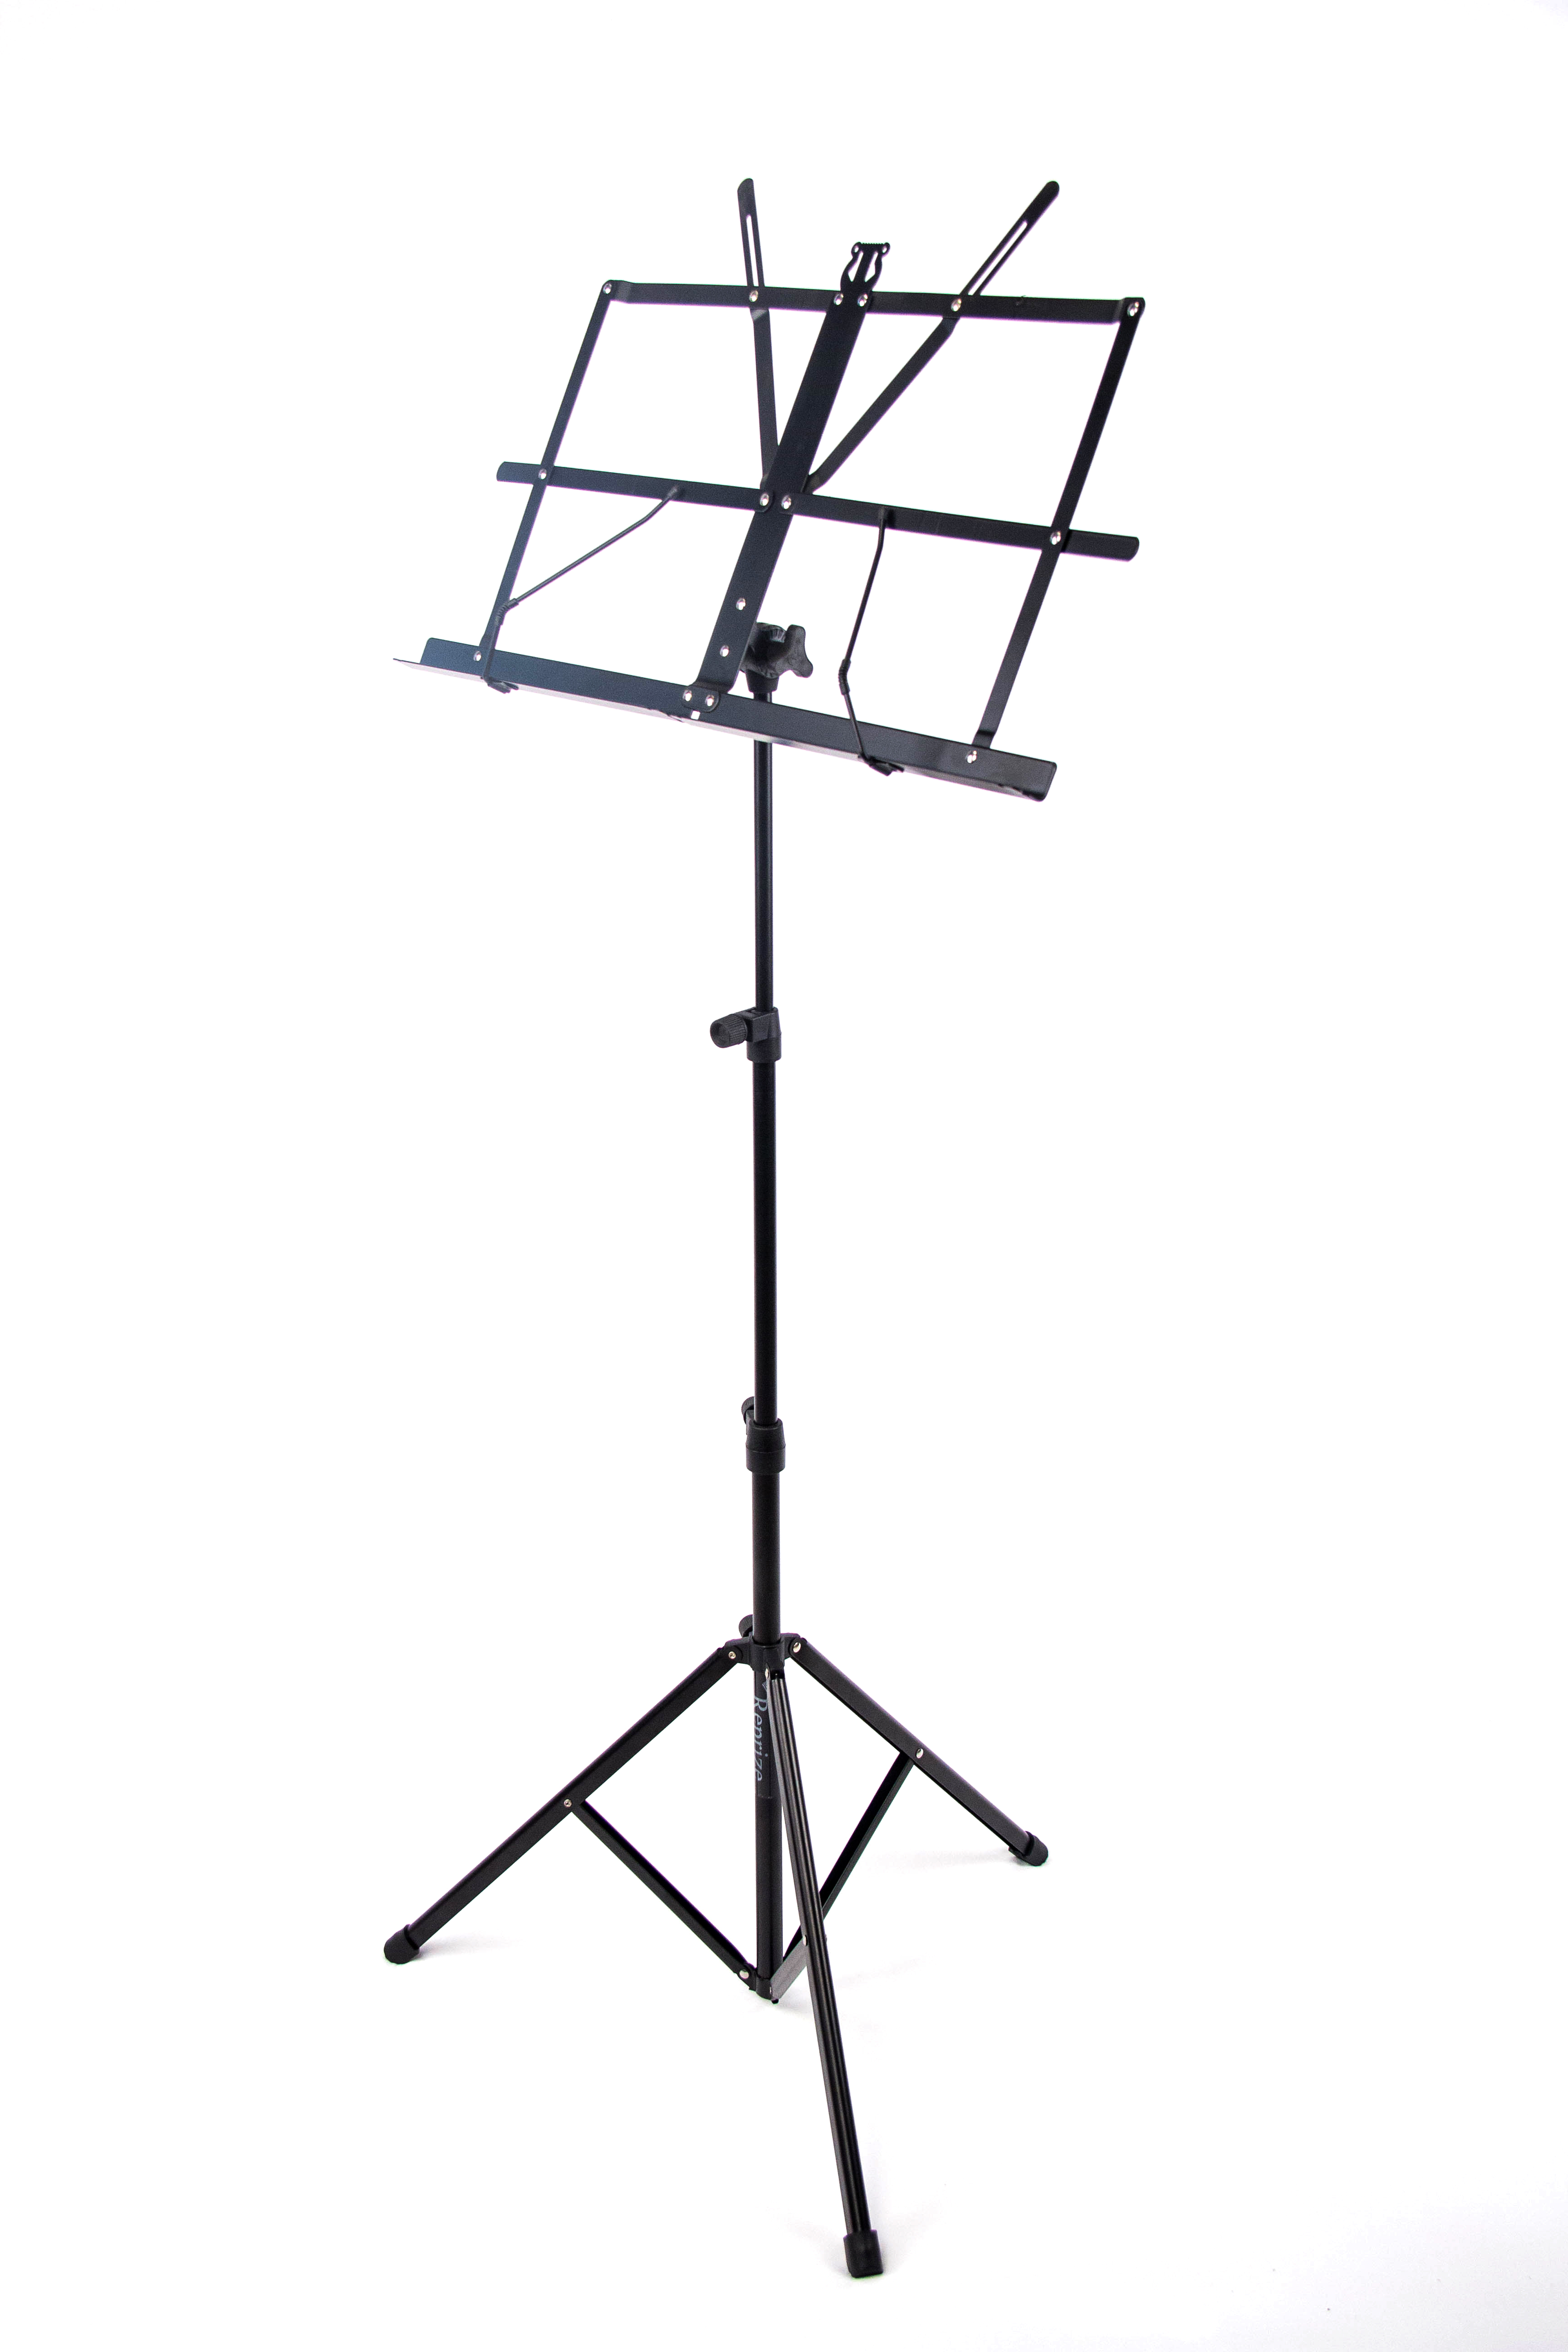 Reprize Accessories CMS-1 Compact Folding Music Stand with carrying case by Reprize